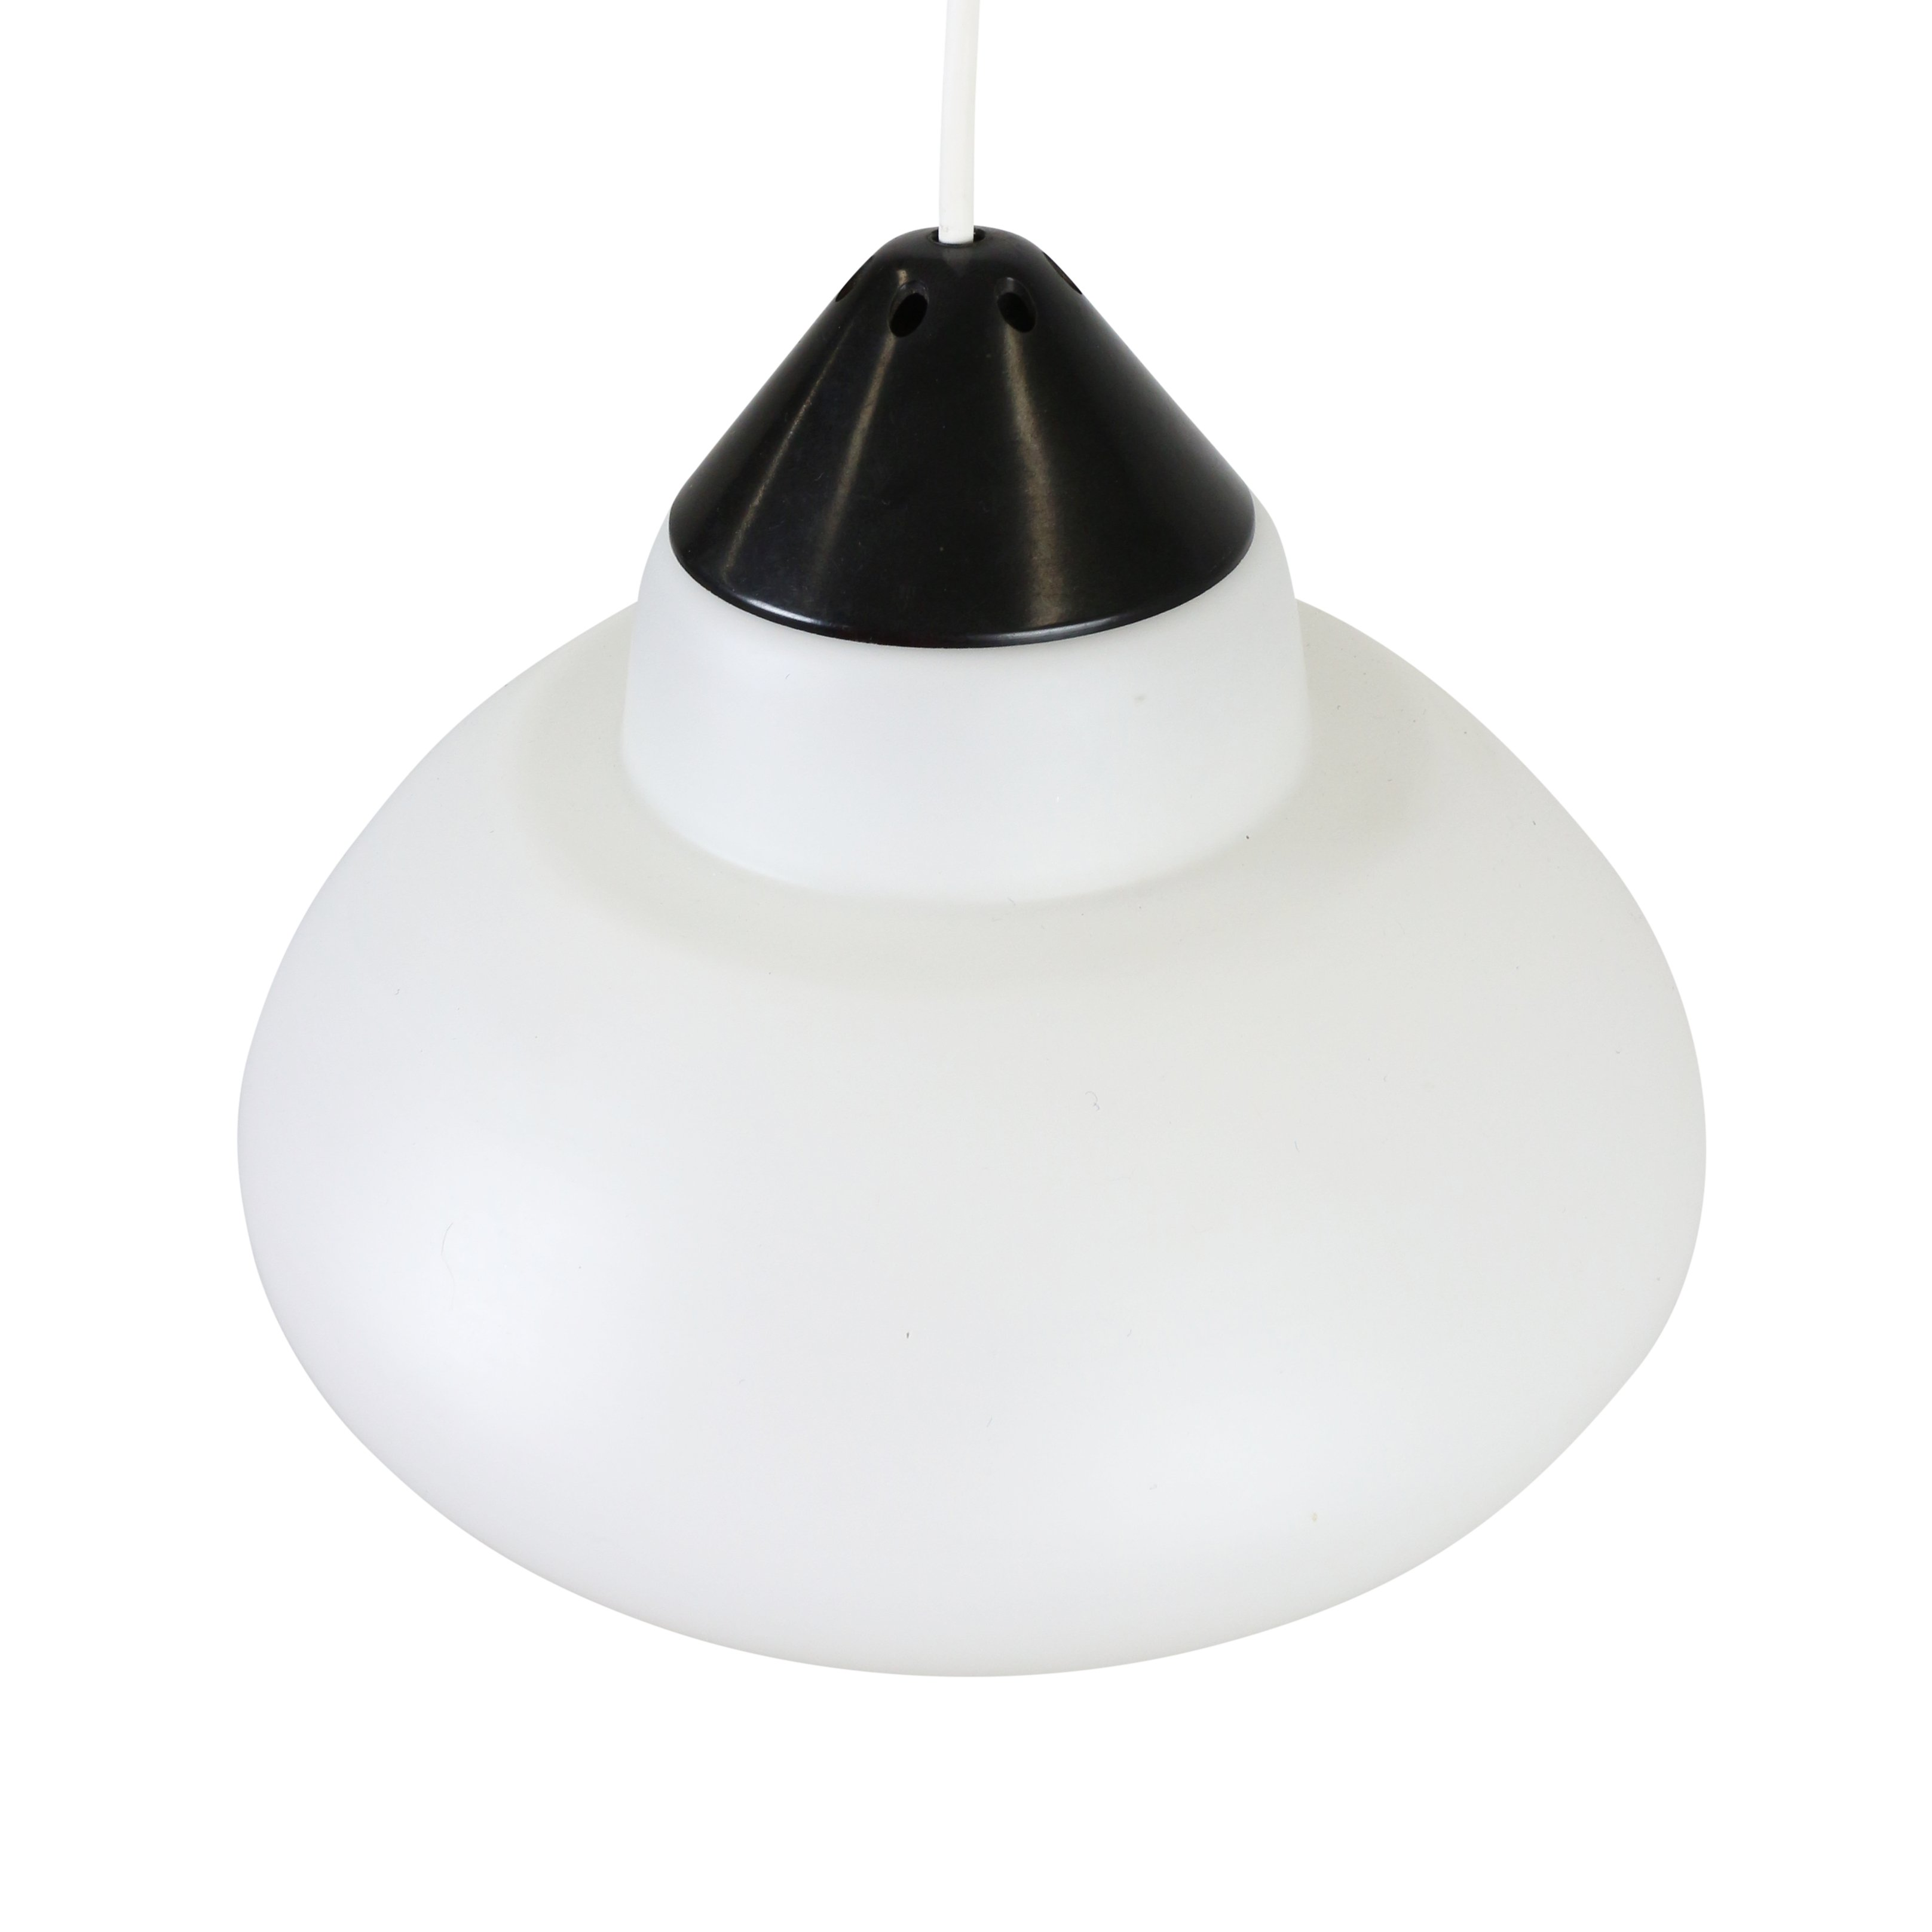 Black and white milk glass pendant by philips holland 1960s 1206 black and white milk glass pendant by philips holland 1960s mozeypictures Choice Image